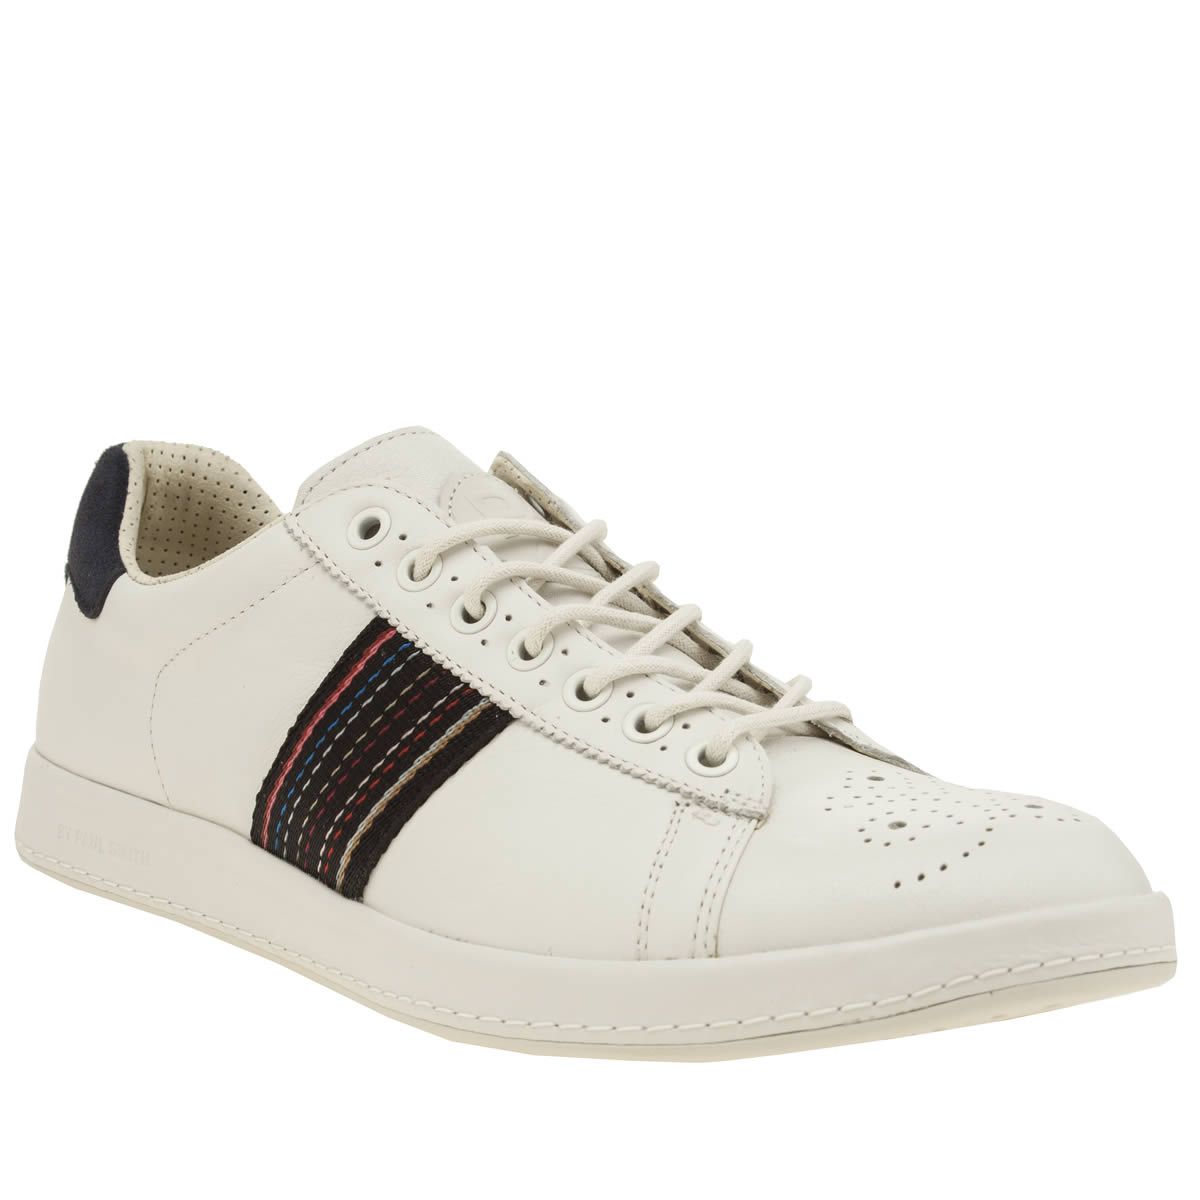 paul smith shoe ps Paul Smith Shoe Ps White & Navy Rabbit Trainers